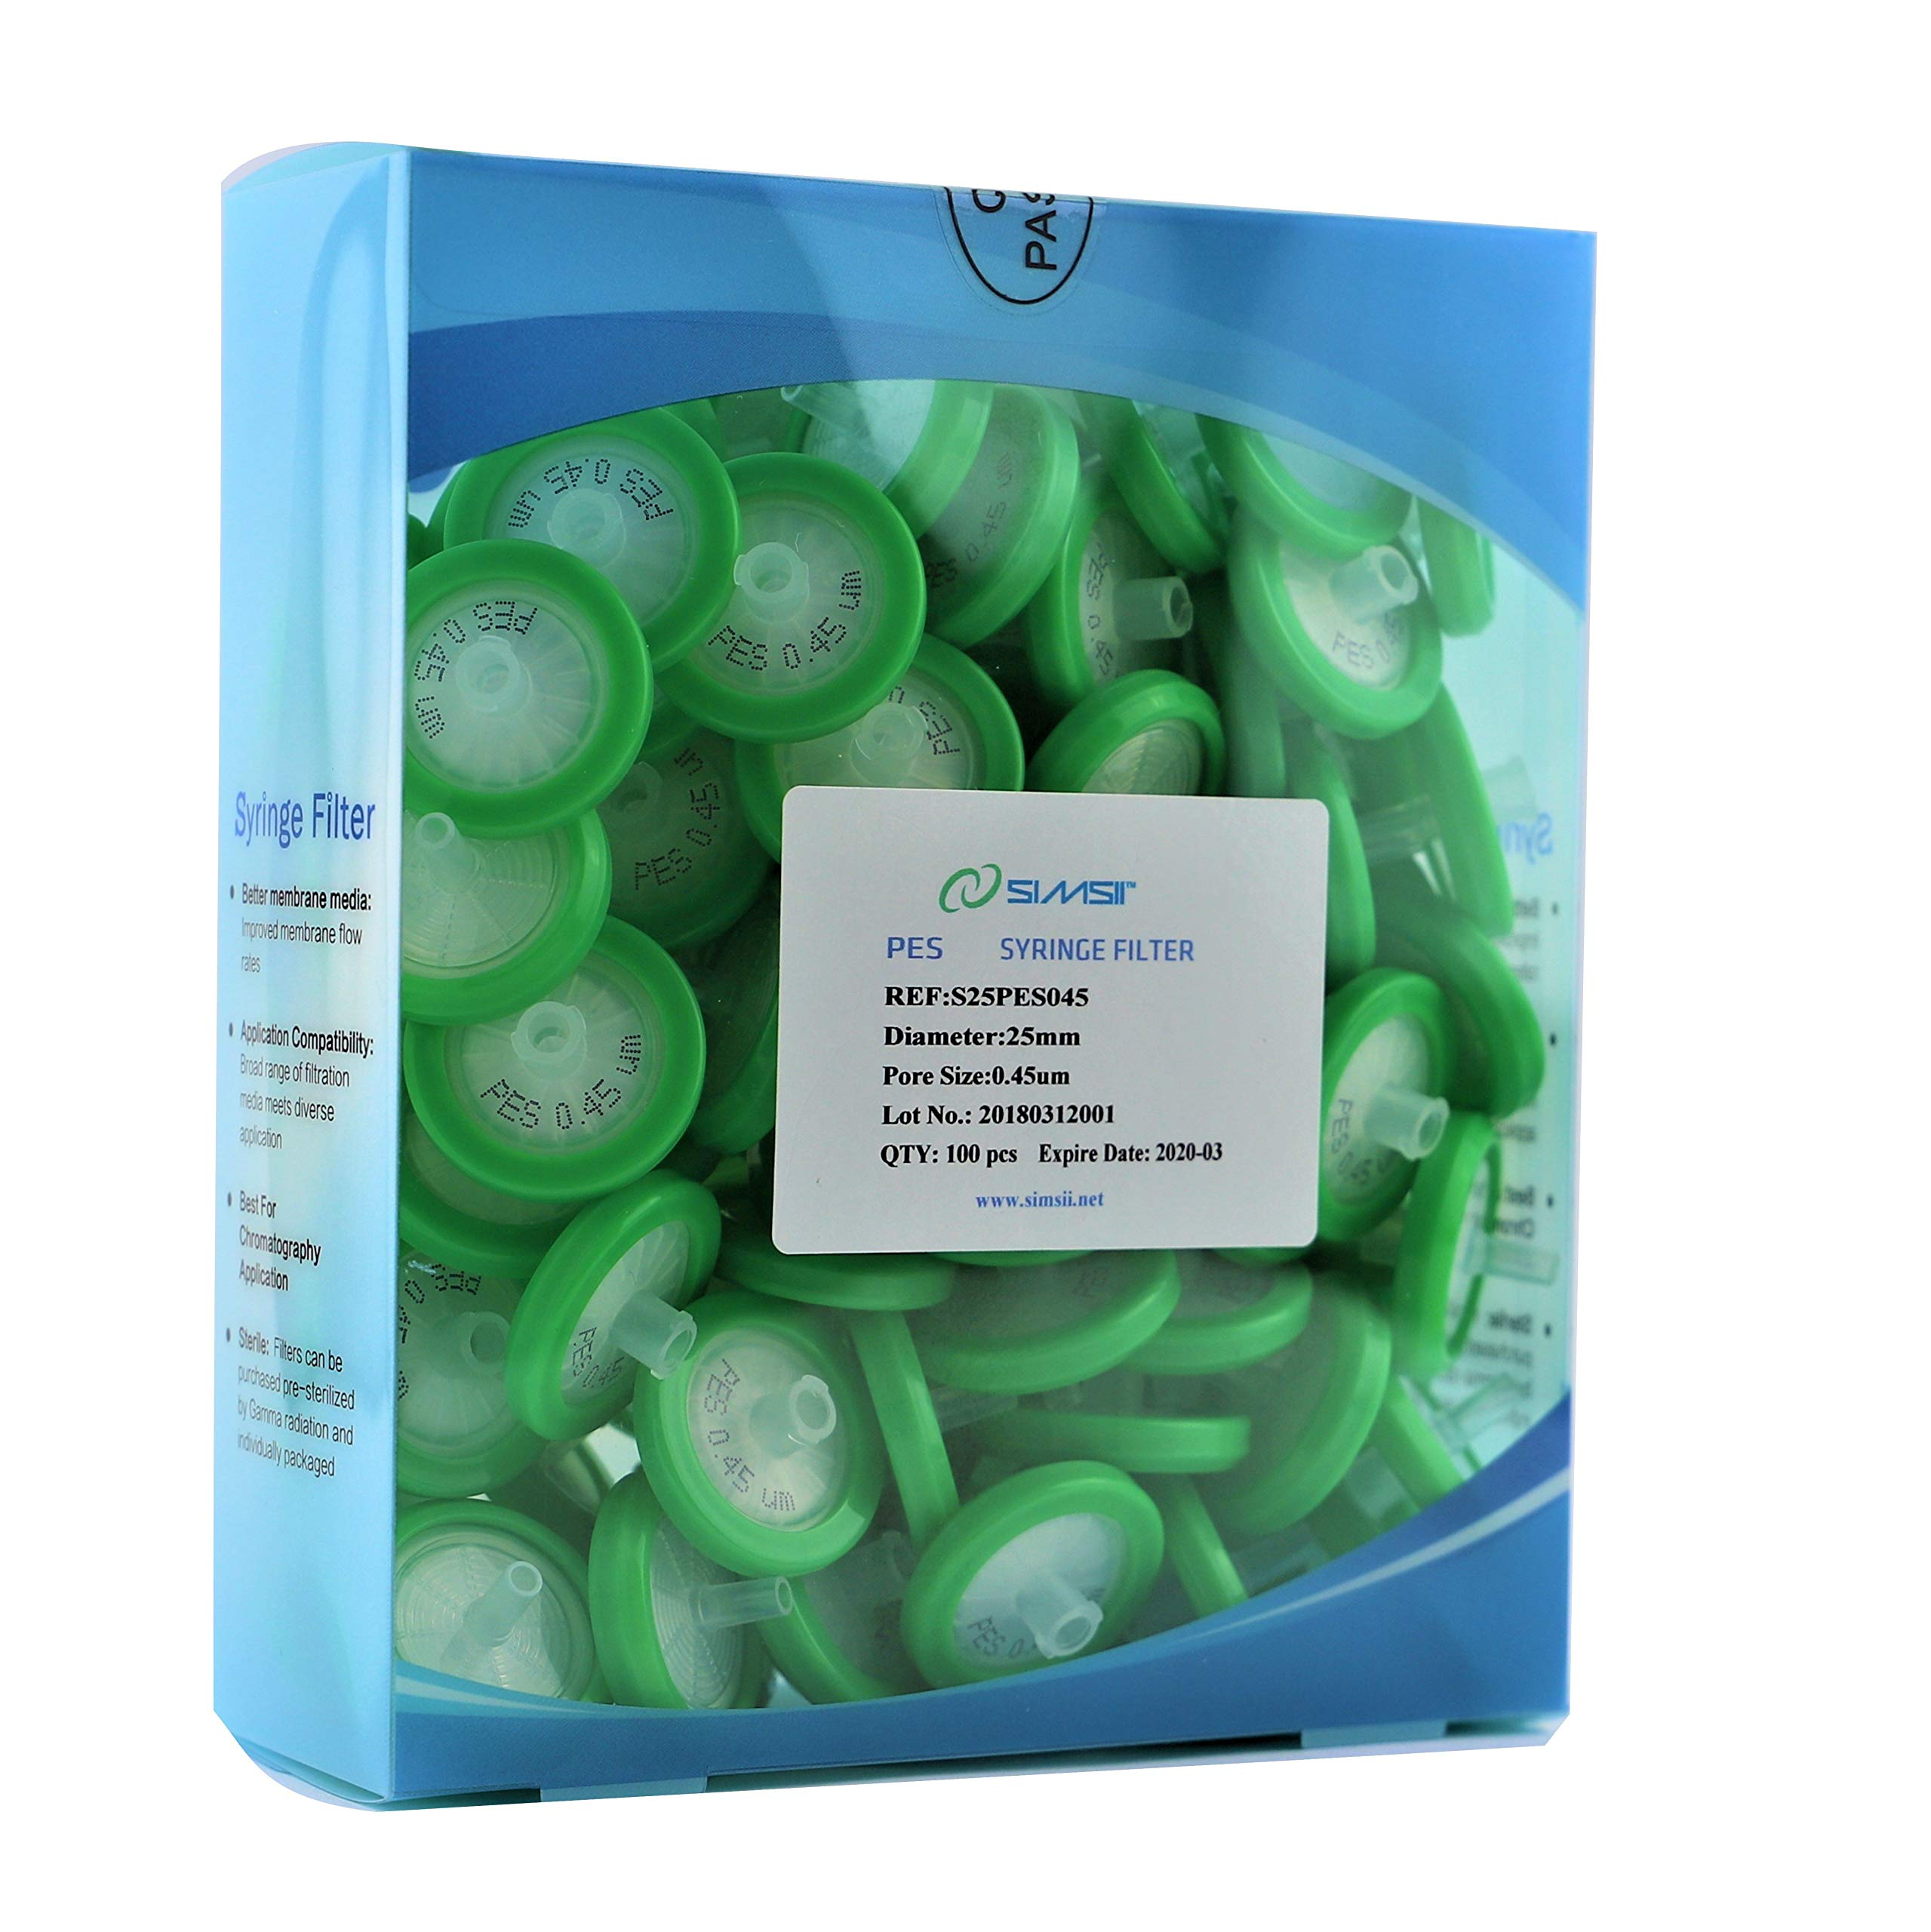 Simsii Syringe Filter, PES Non Sterile Micron Lab Filter, Diameter 25mm, Pore Size 0.45um, 100/pack by Simsii